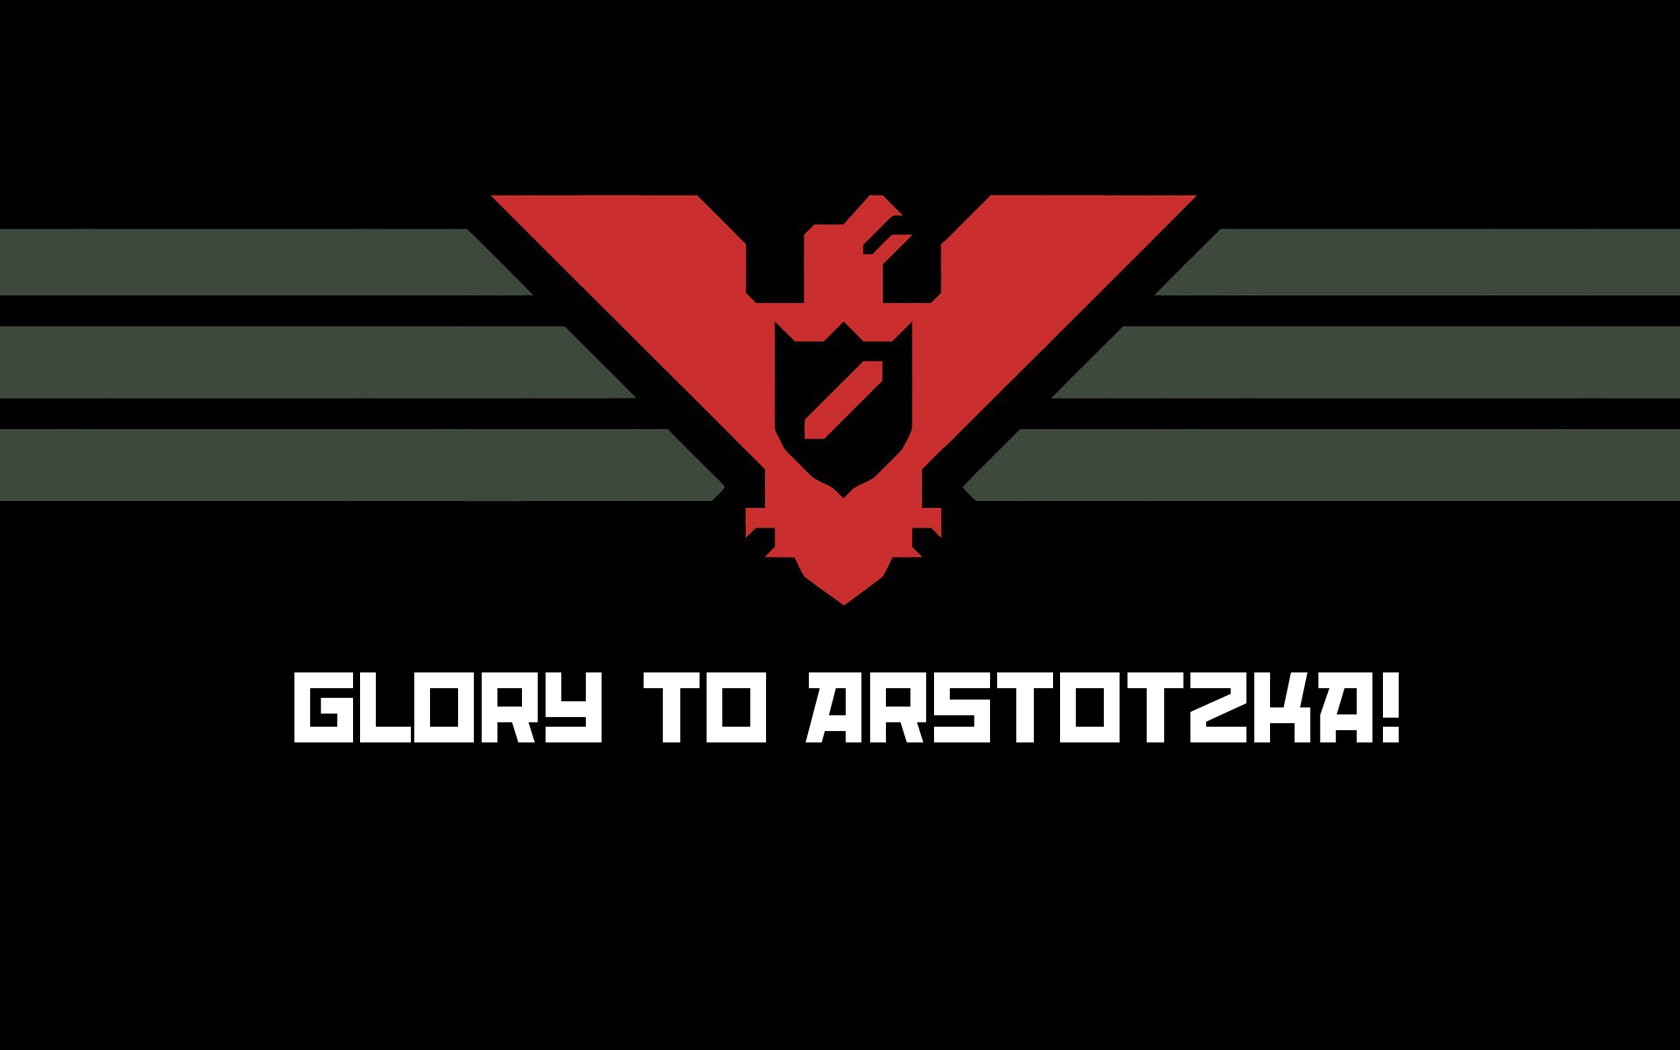 Free Papers, Please Wallpaper in 1680x1050